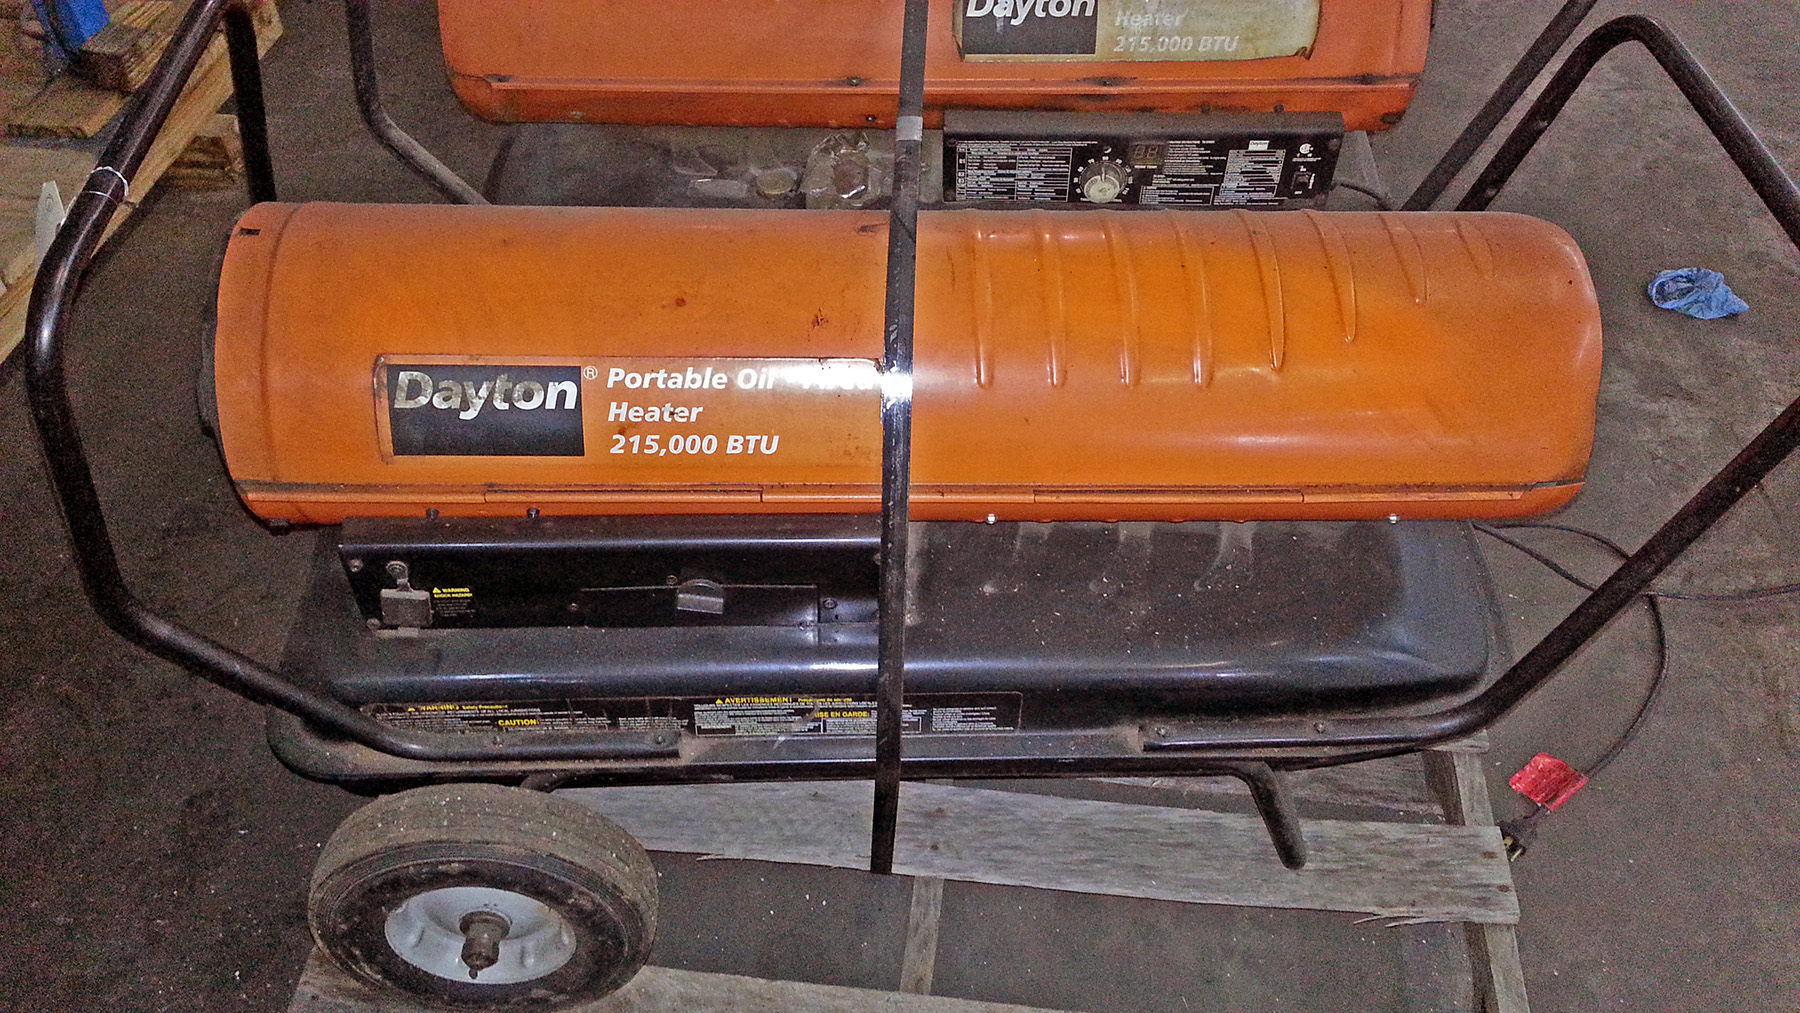 USED, 210,000 BTU DAYTON MODEL 3VE52D PORTABLE OIL-FIRED SPACE HEATER